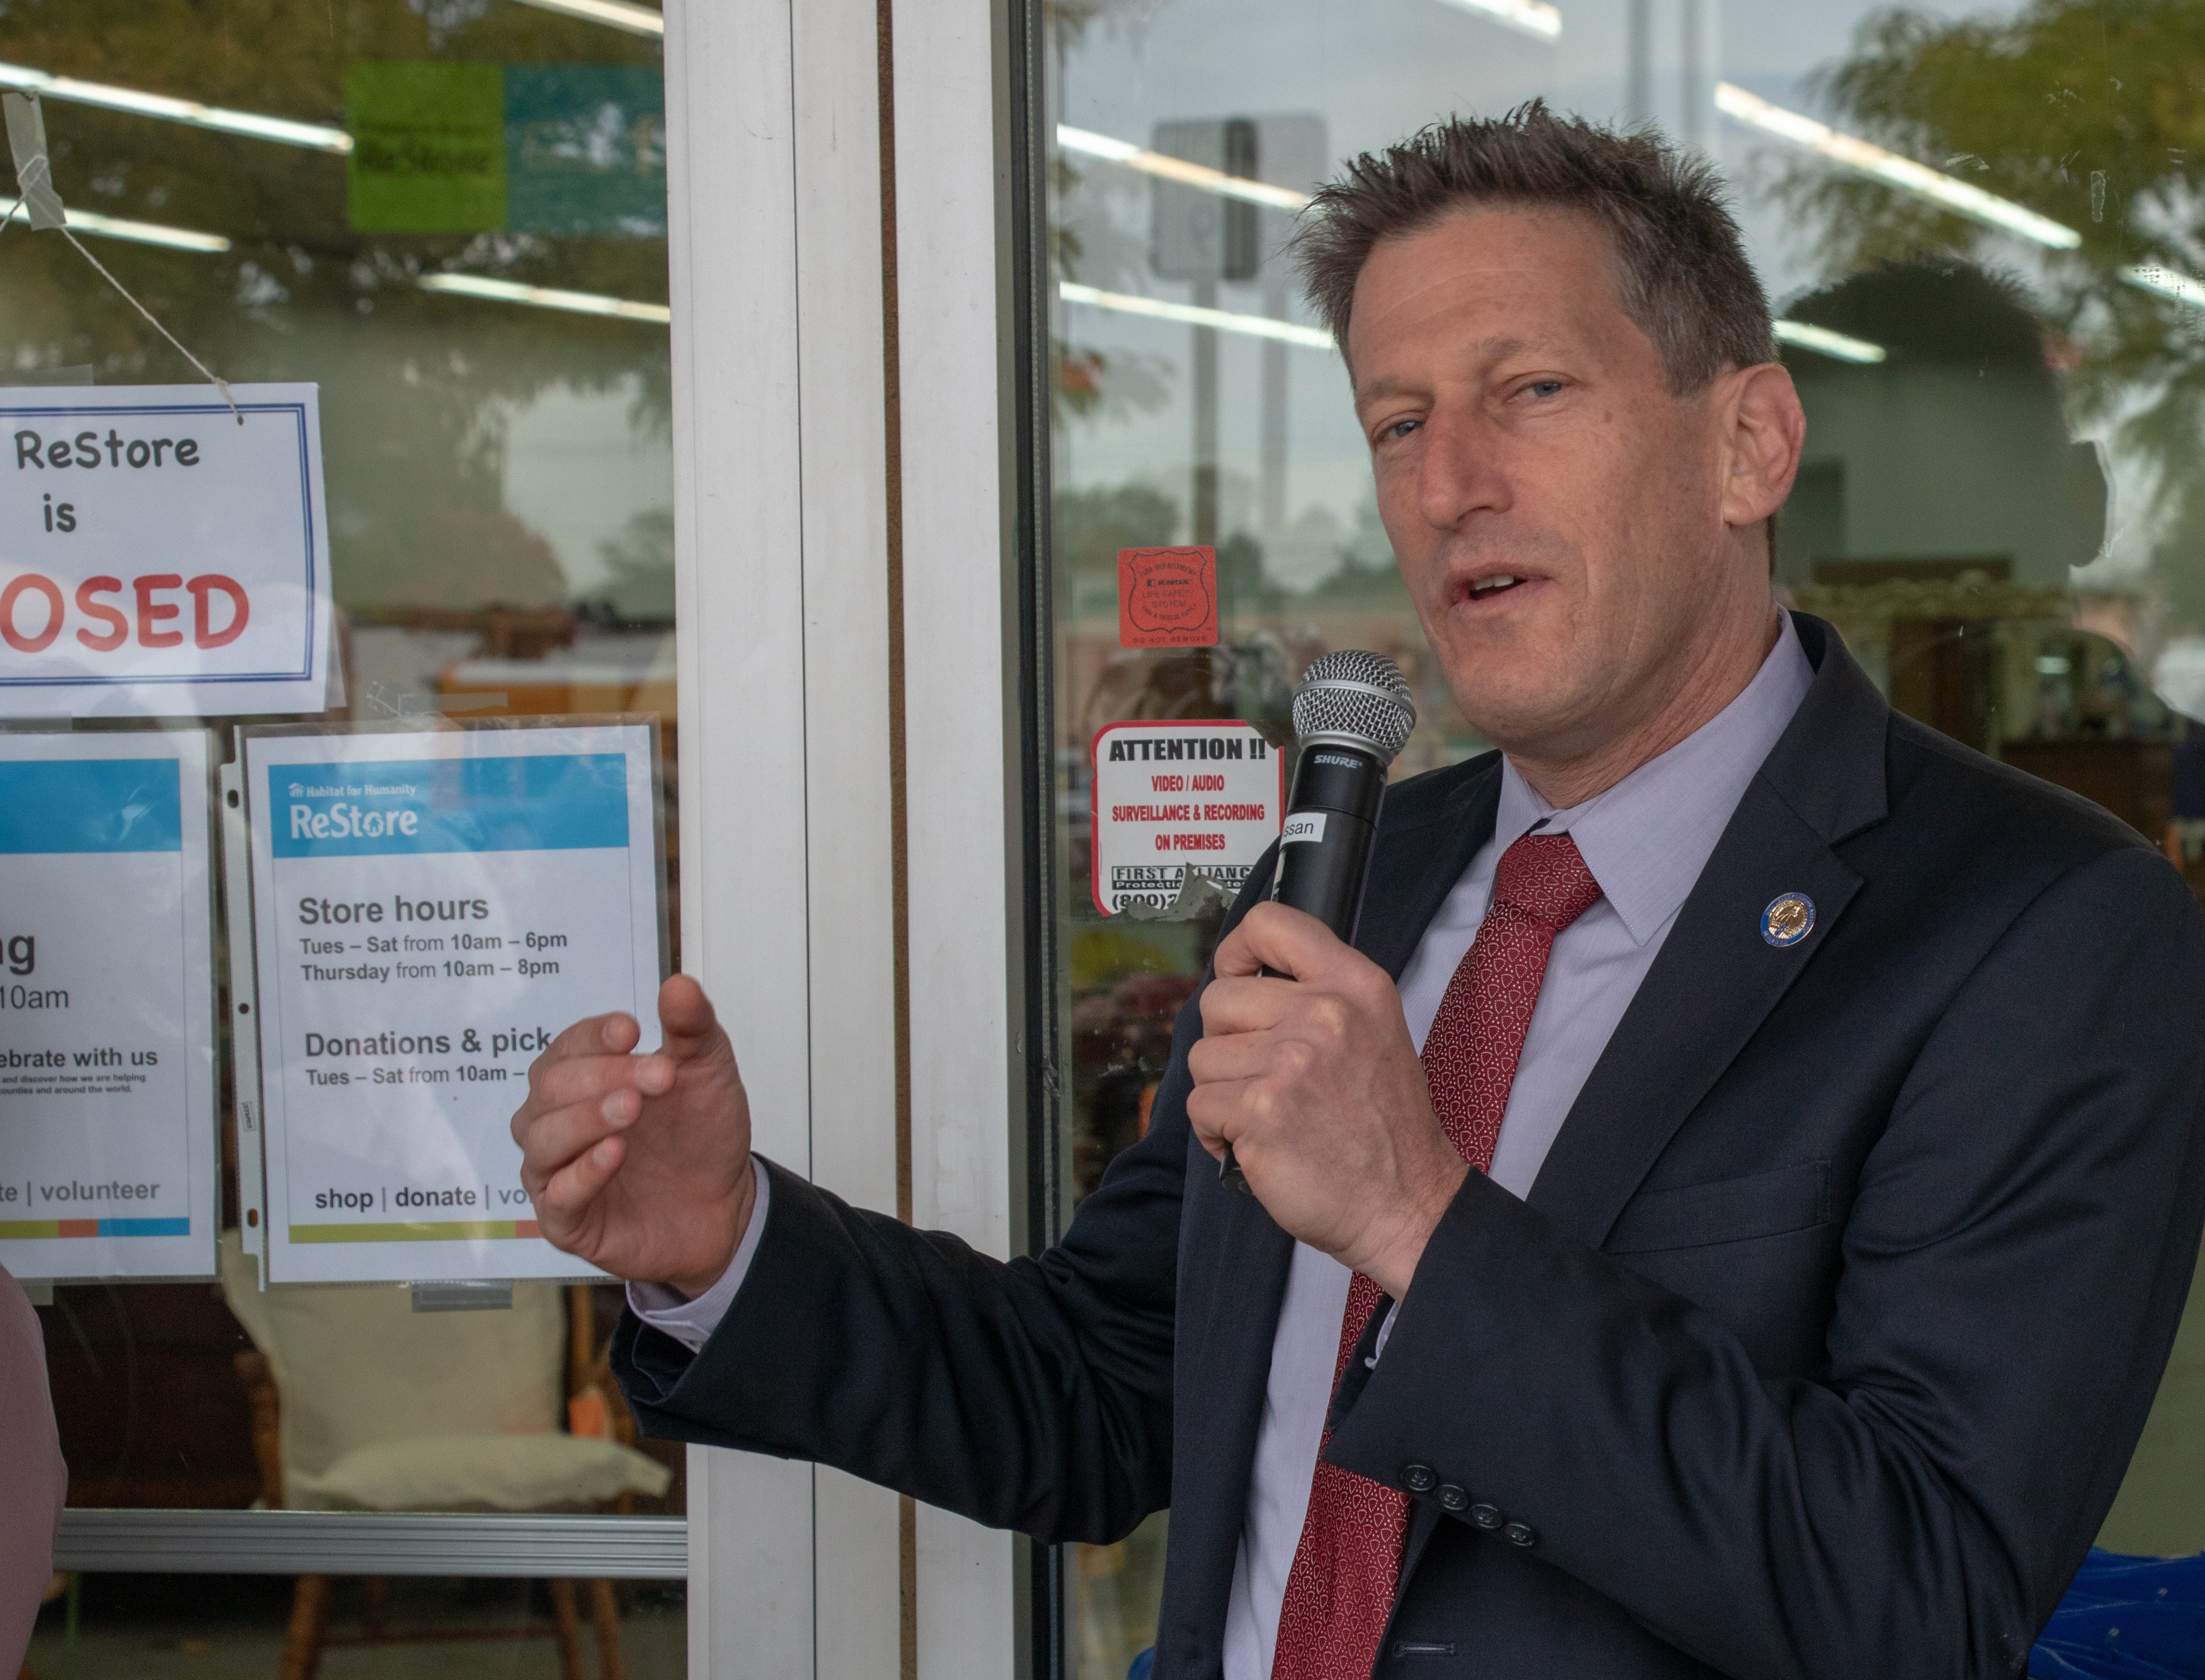 Assemblyman Andrew Zwicker talks to the crowd at the opening of the new Habitat ReStore in Manville on Oct. 26 at 10 a.m.